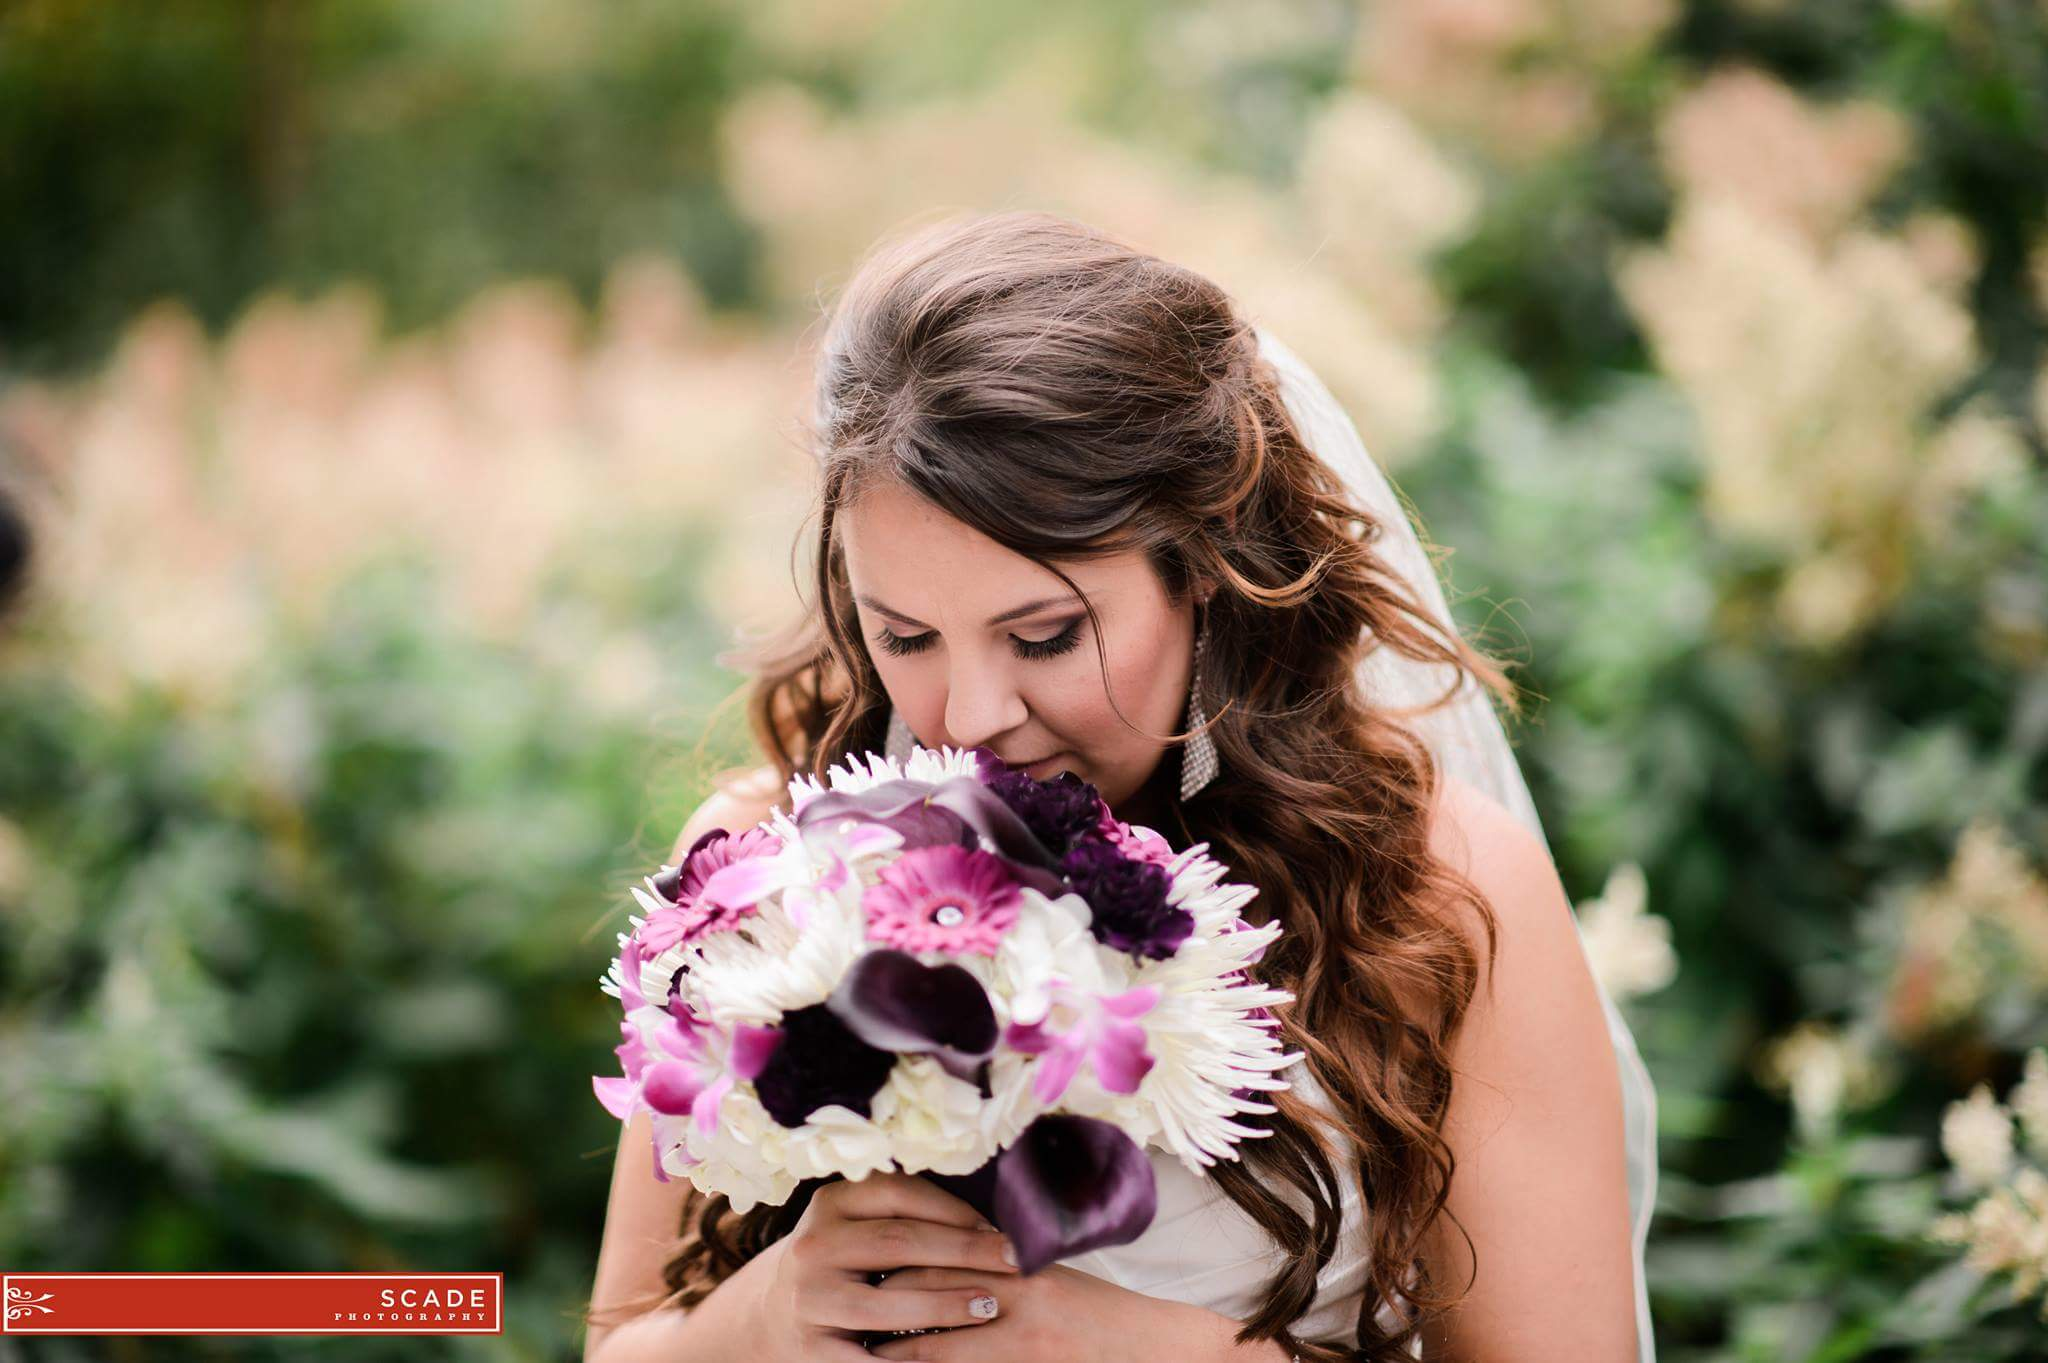 Modern_Bridal_Makeup_YEG_Edmonton_Weddings_Eclectica_Beauty_Astrid-Woodard 8-min